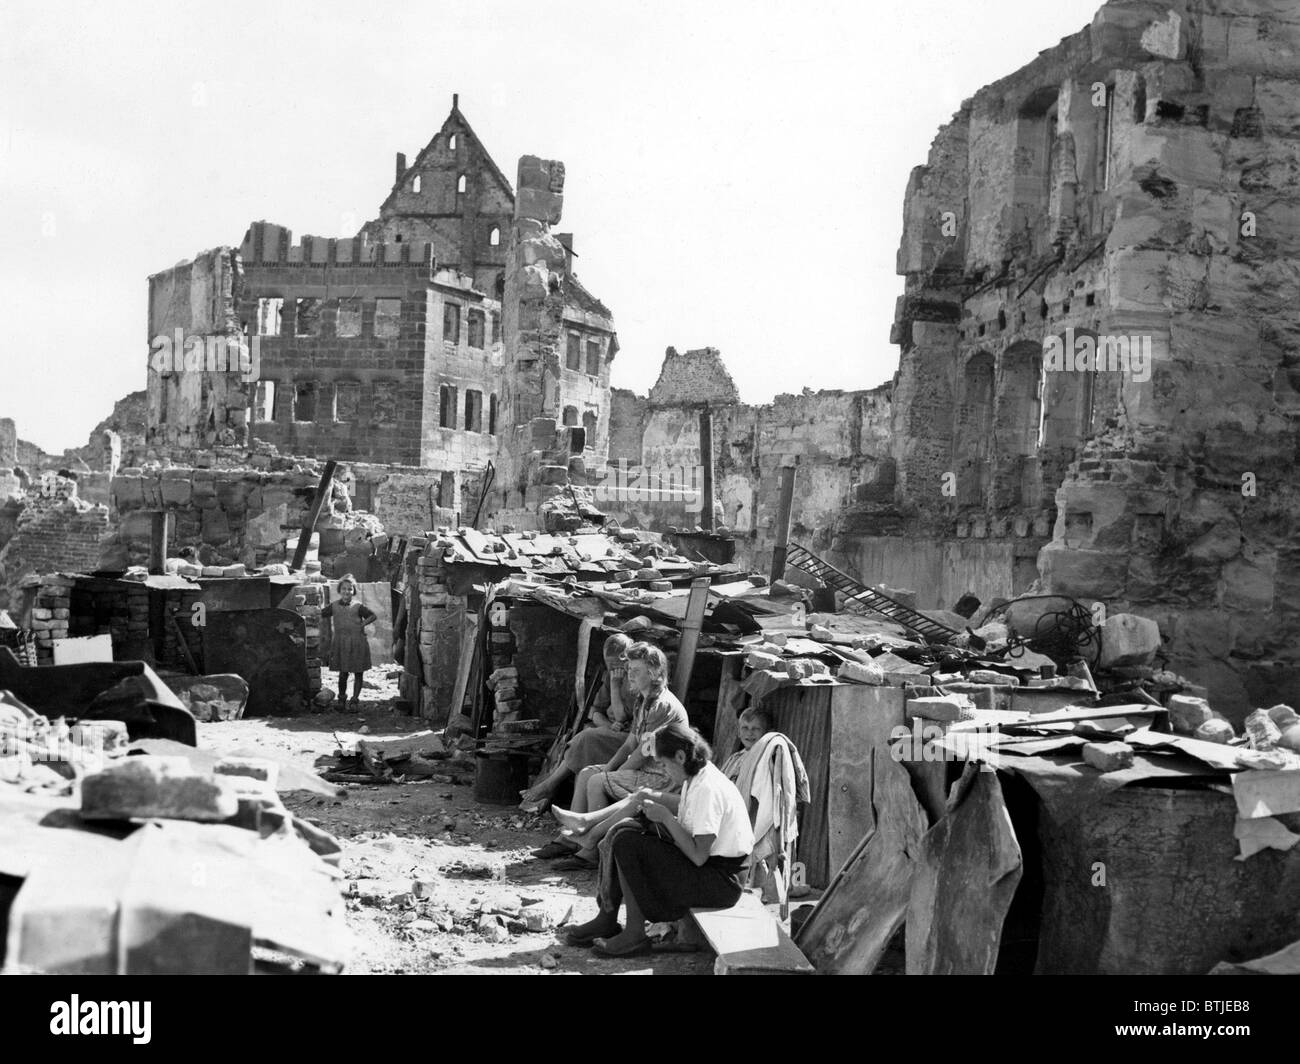 Postwar Nuremberg, life amongst the ruins, 9/19/45 Stock Photo